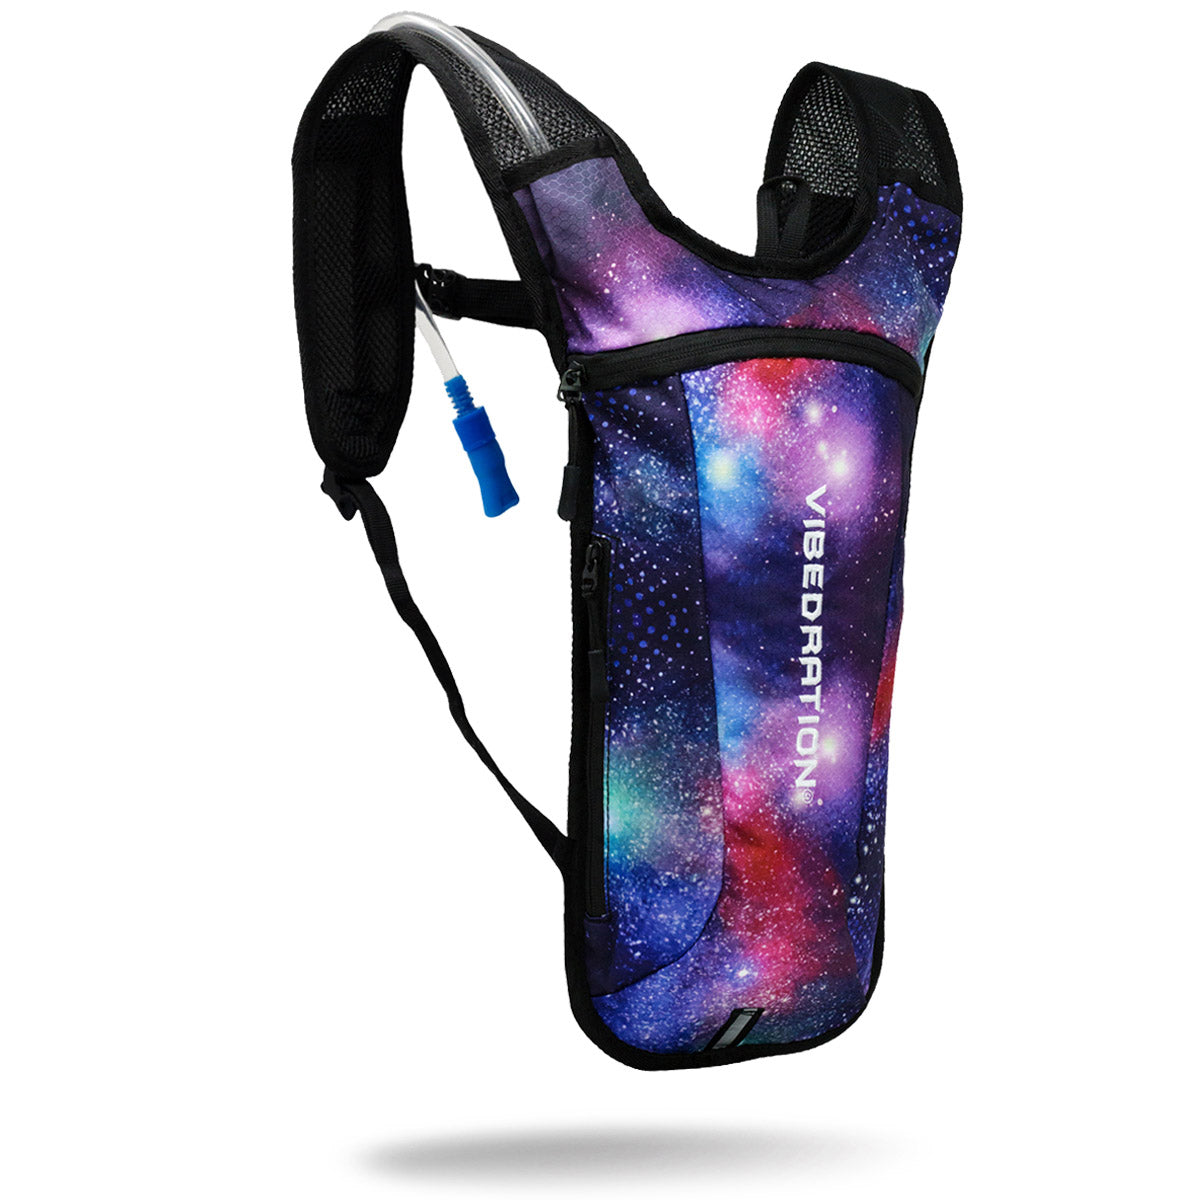 Blue, Purple & Red two liter galaxy hydration pack